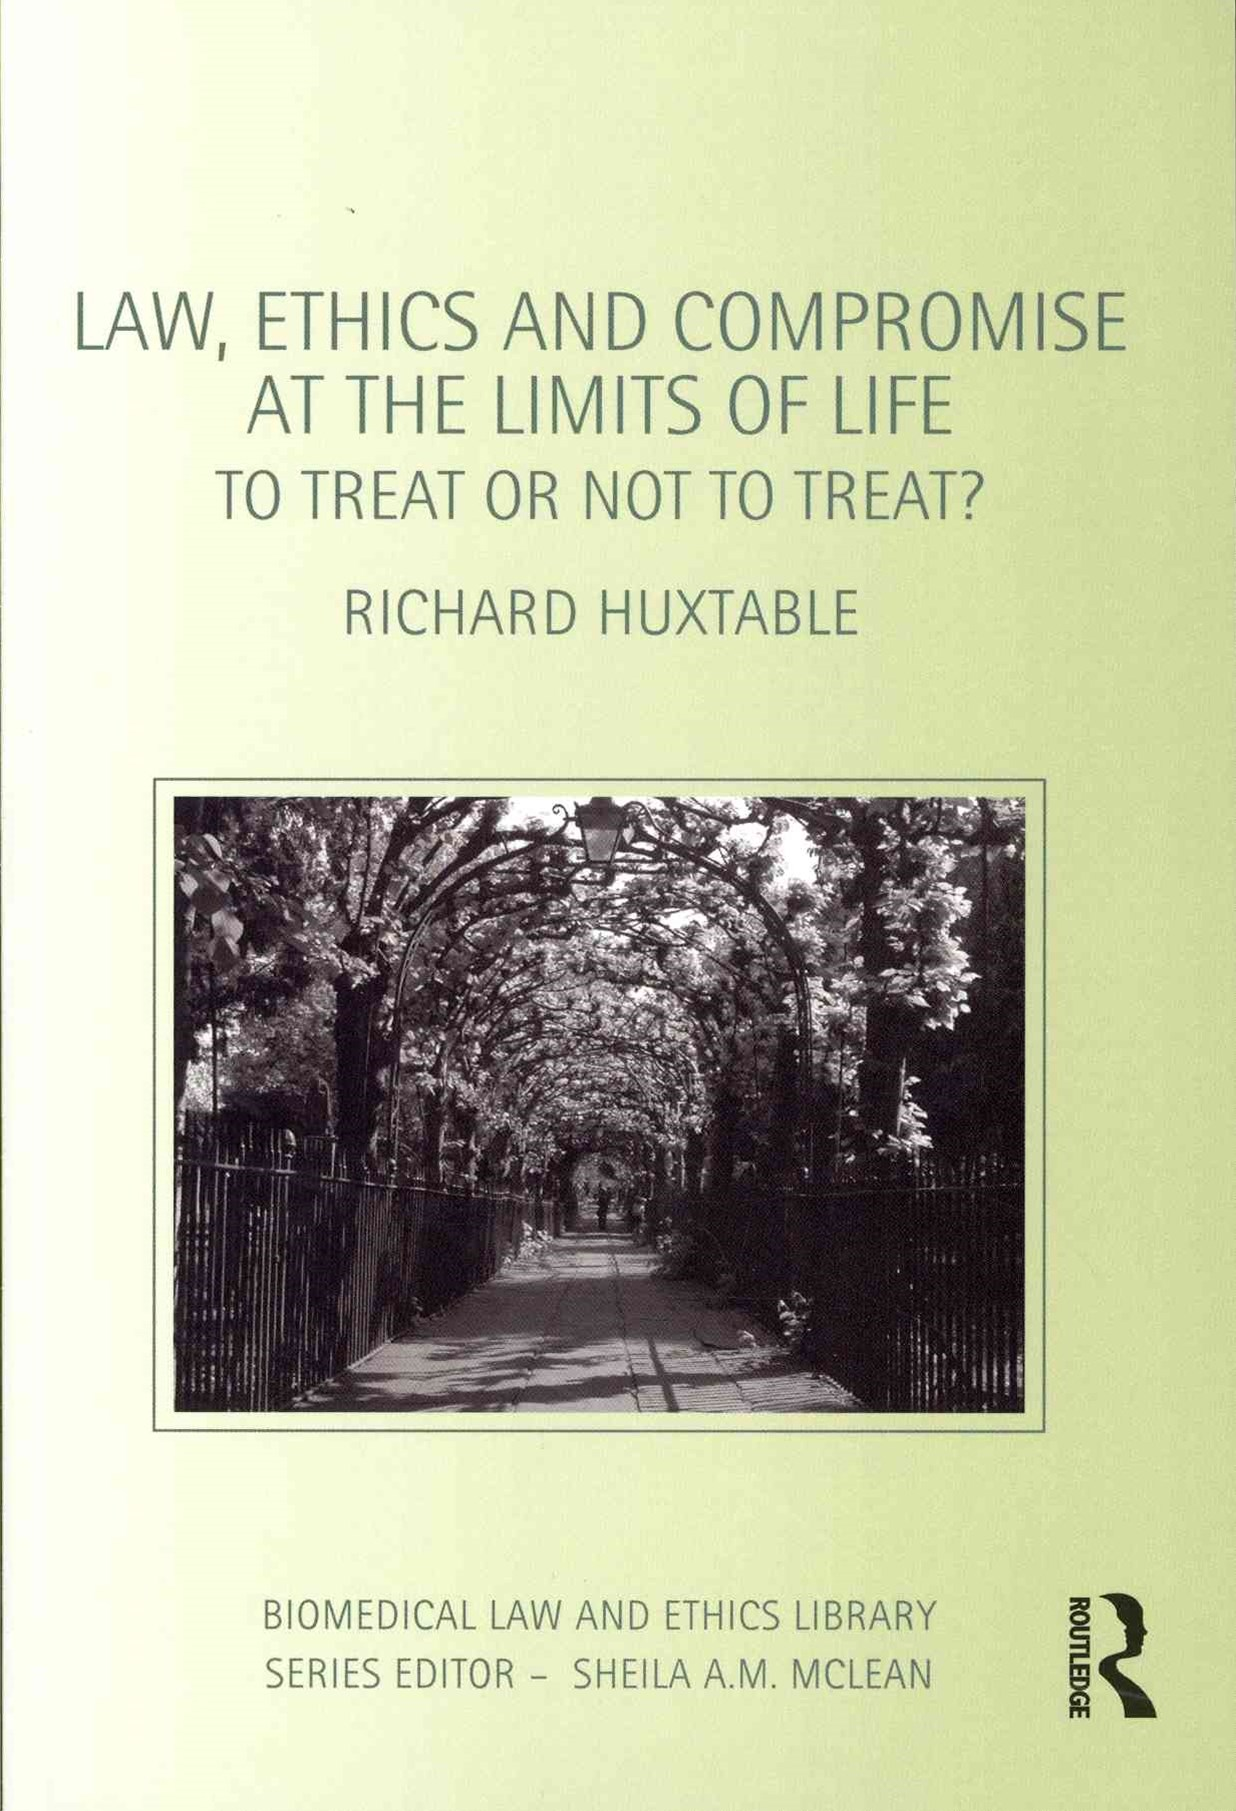 Law, Ethics and Compromise at the Limits of Life